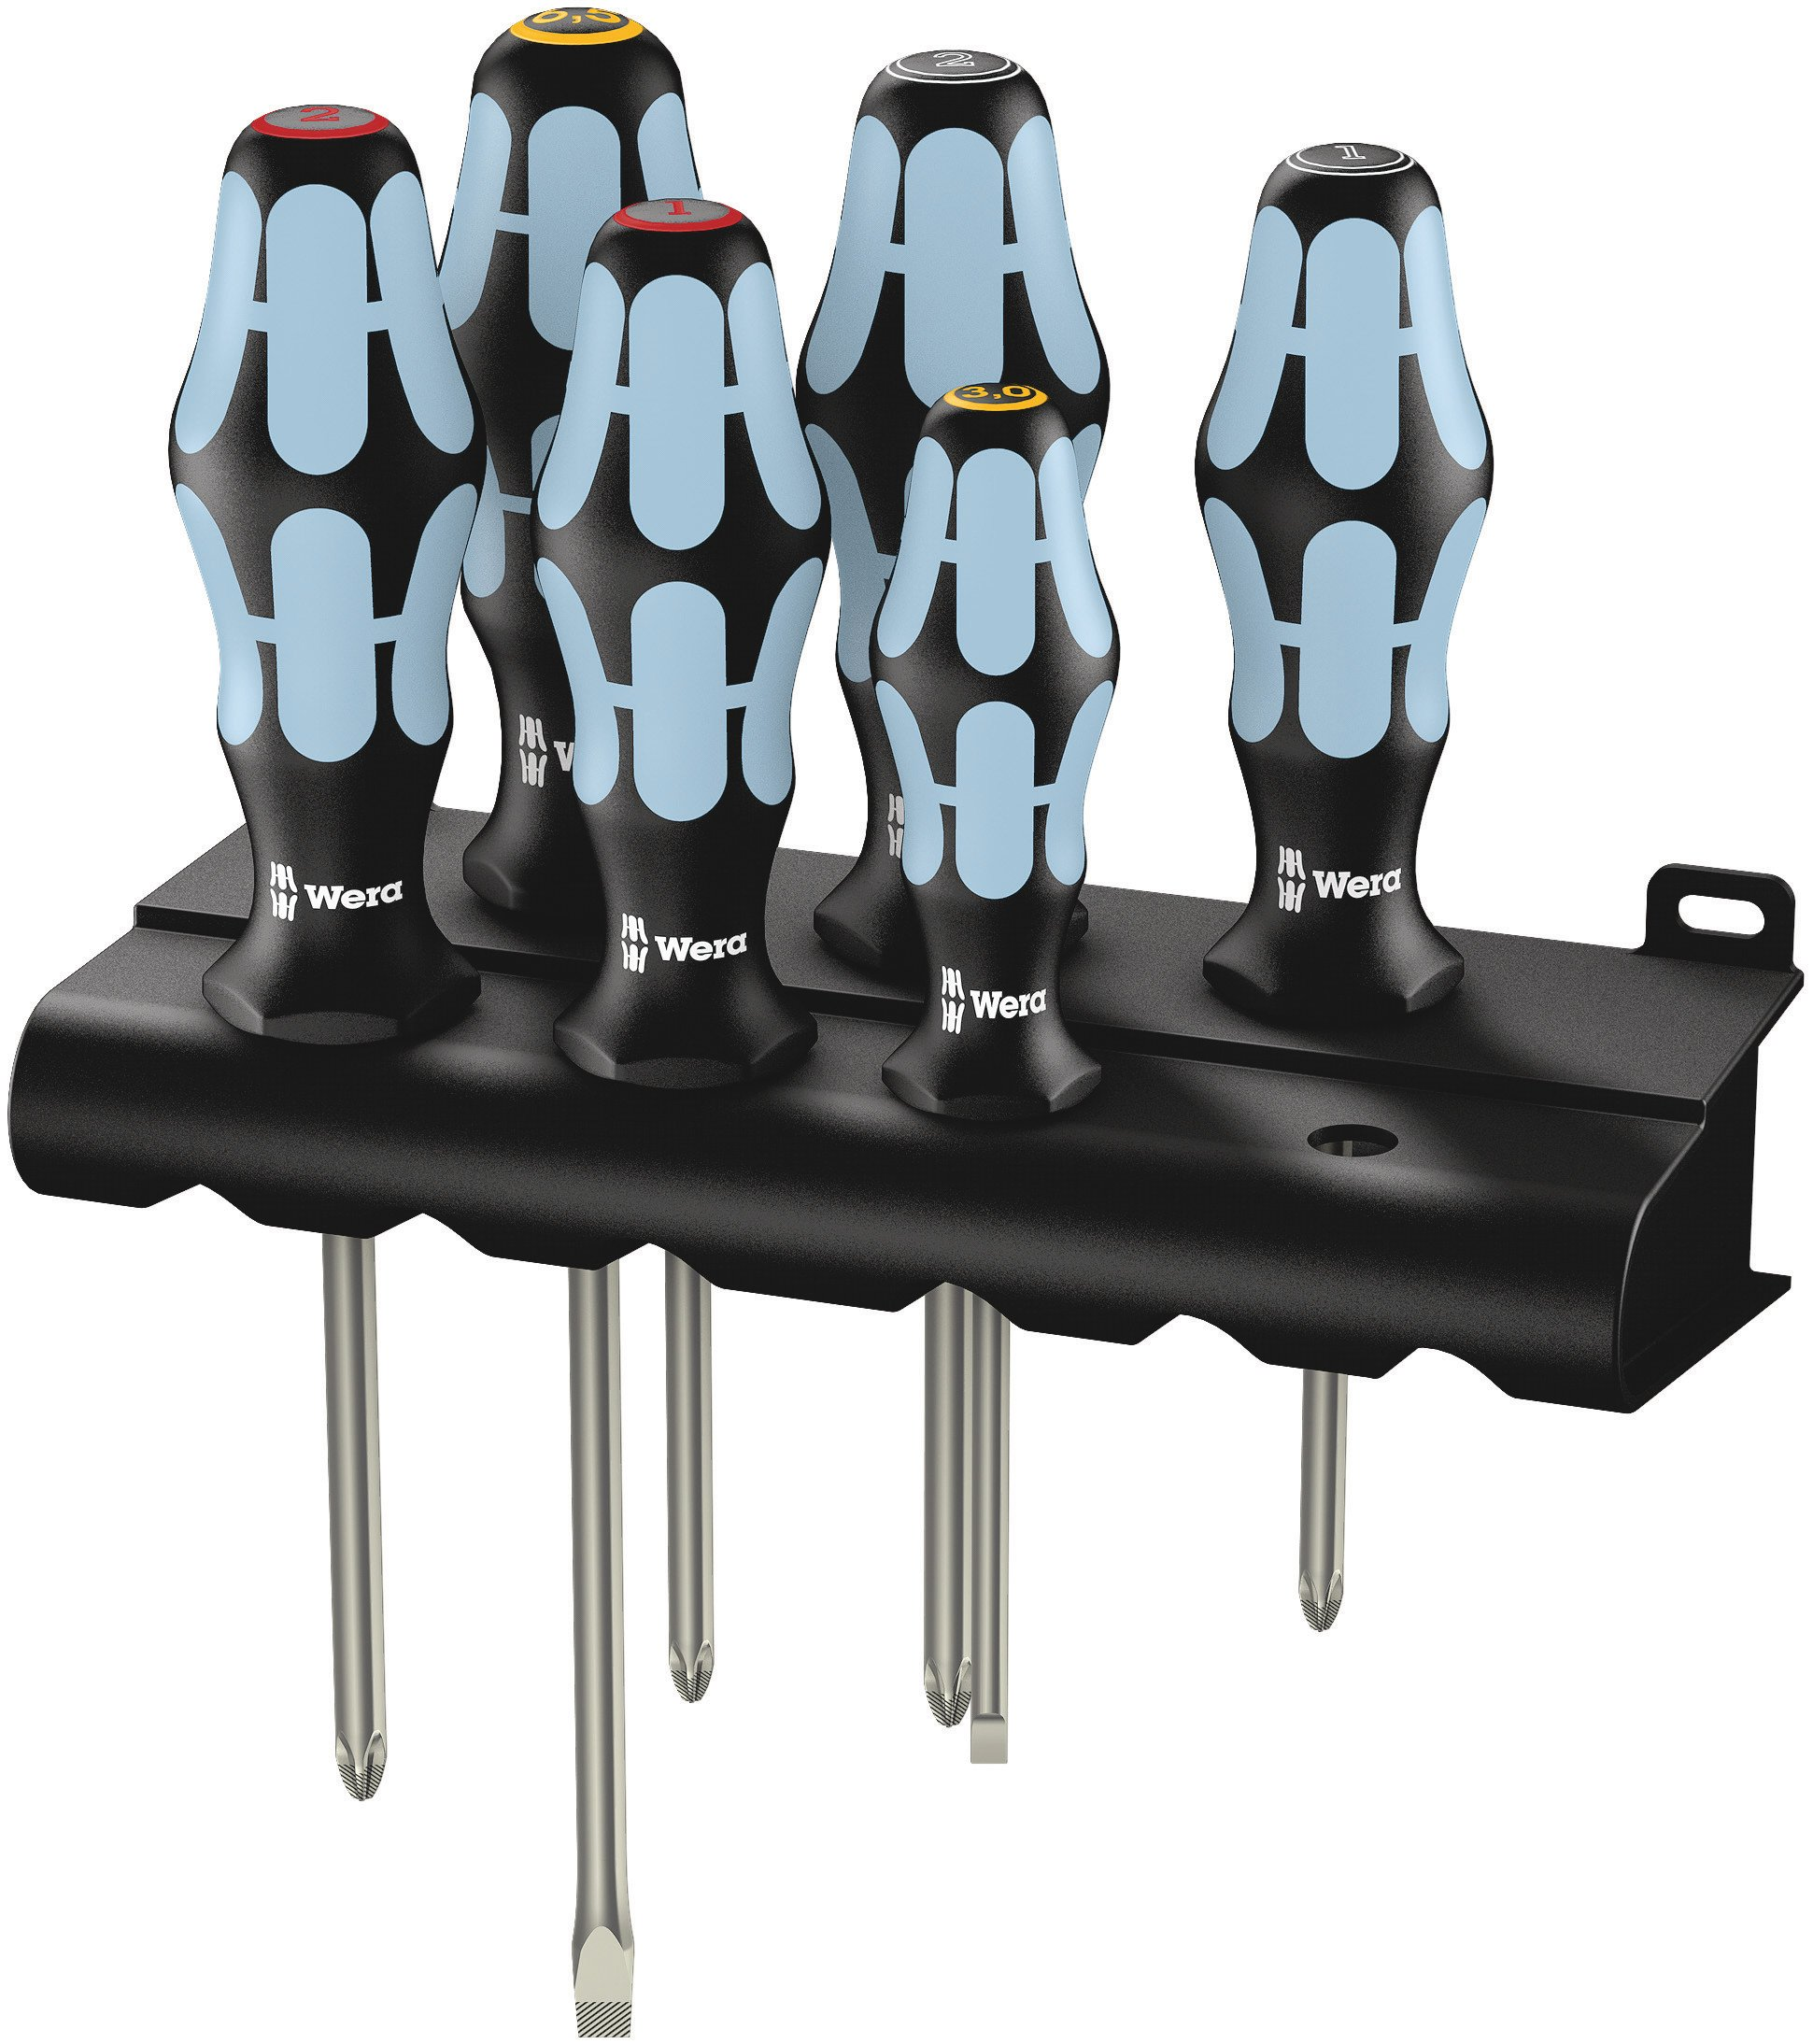 Wera 05032063001 Kraftform Stainless 3334/3350/3355/6 Stainless Steel Slotted/Phillips/Pozidriv Screwdriver Set and Rack, 6-Piece